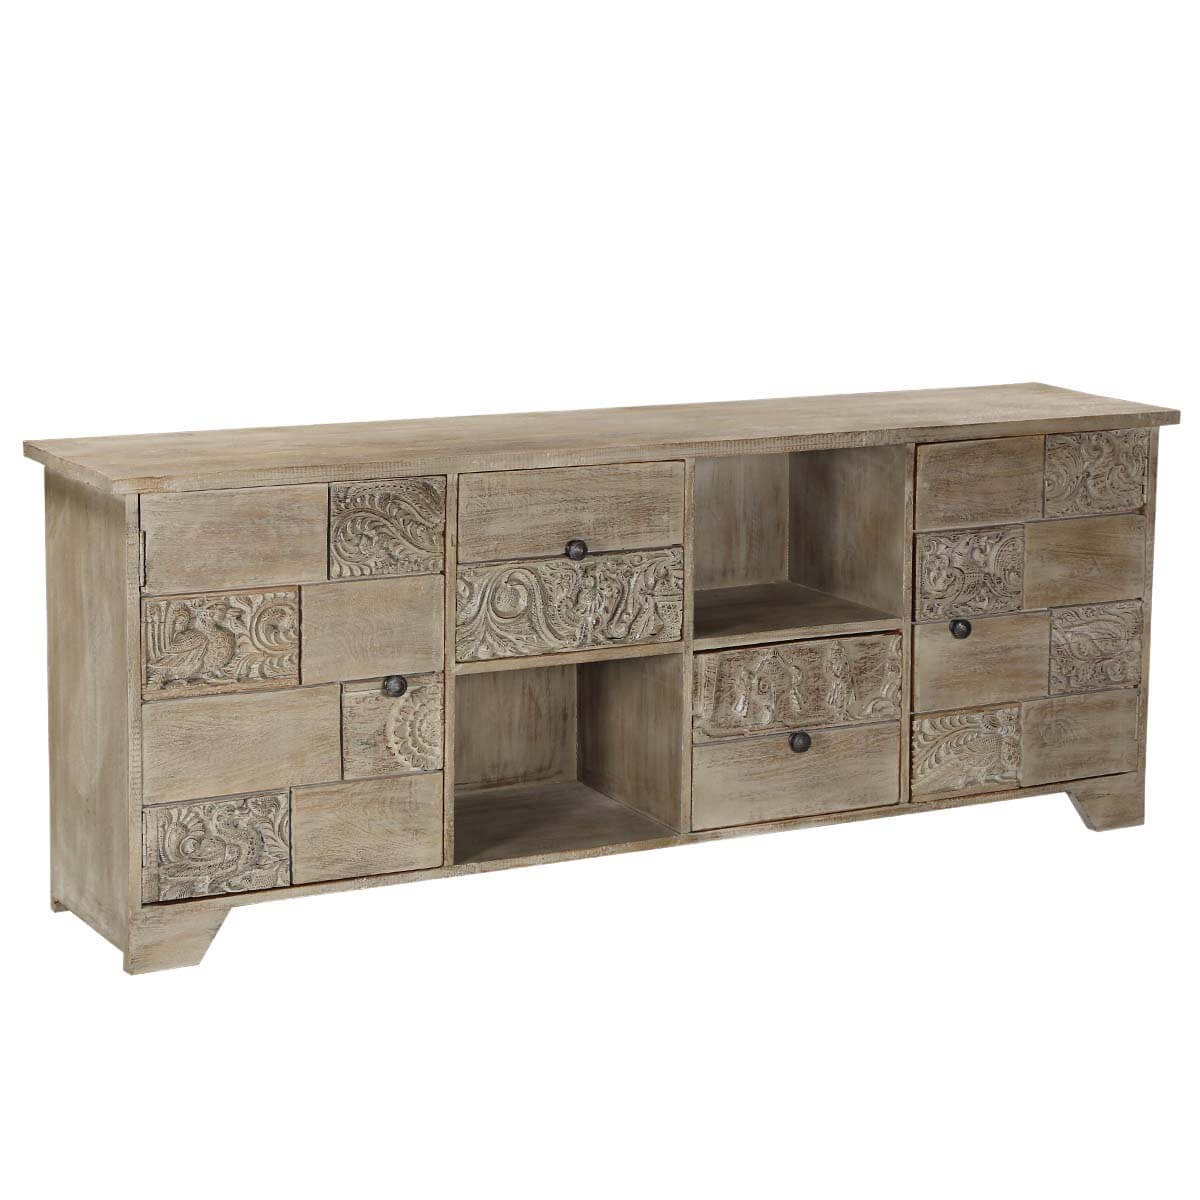 Reclaimed wood media console palazzo furniture with door